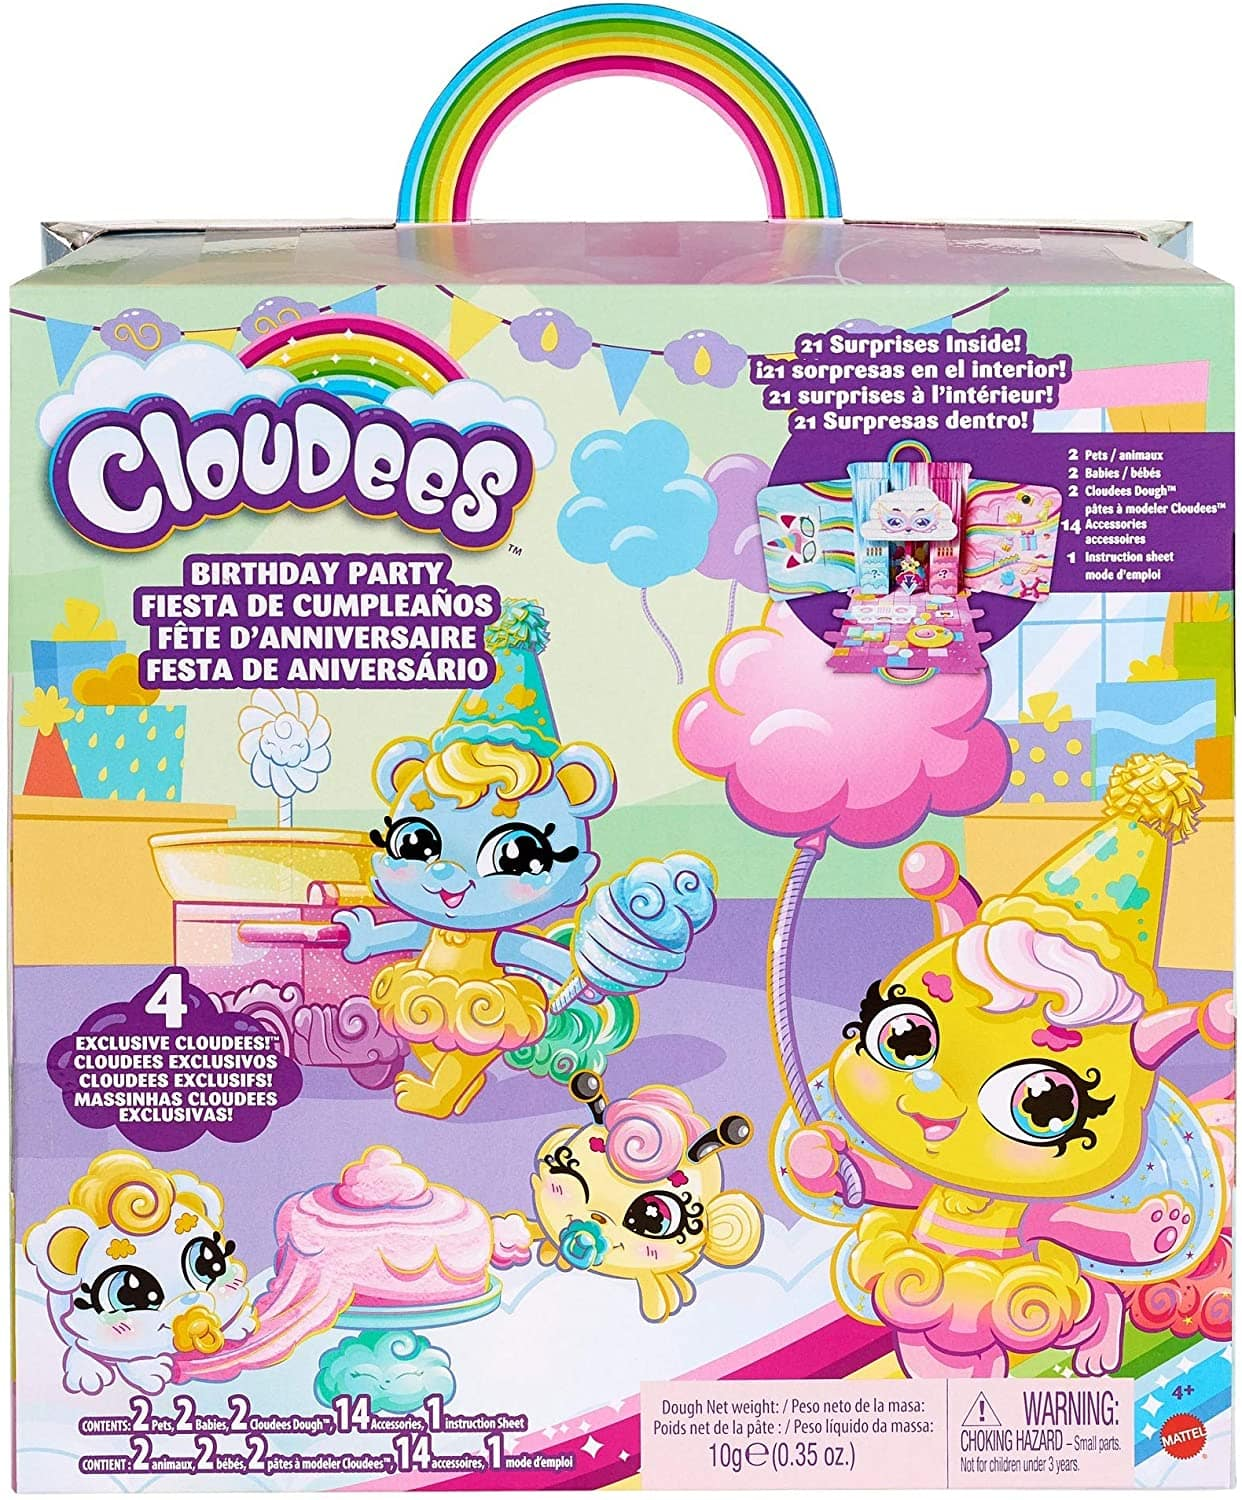 21-Piece Mattel Kid's Cloudees Surprise Party Pack $14.46 + Free Shipping w/ Prime or on $25+